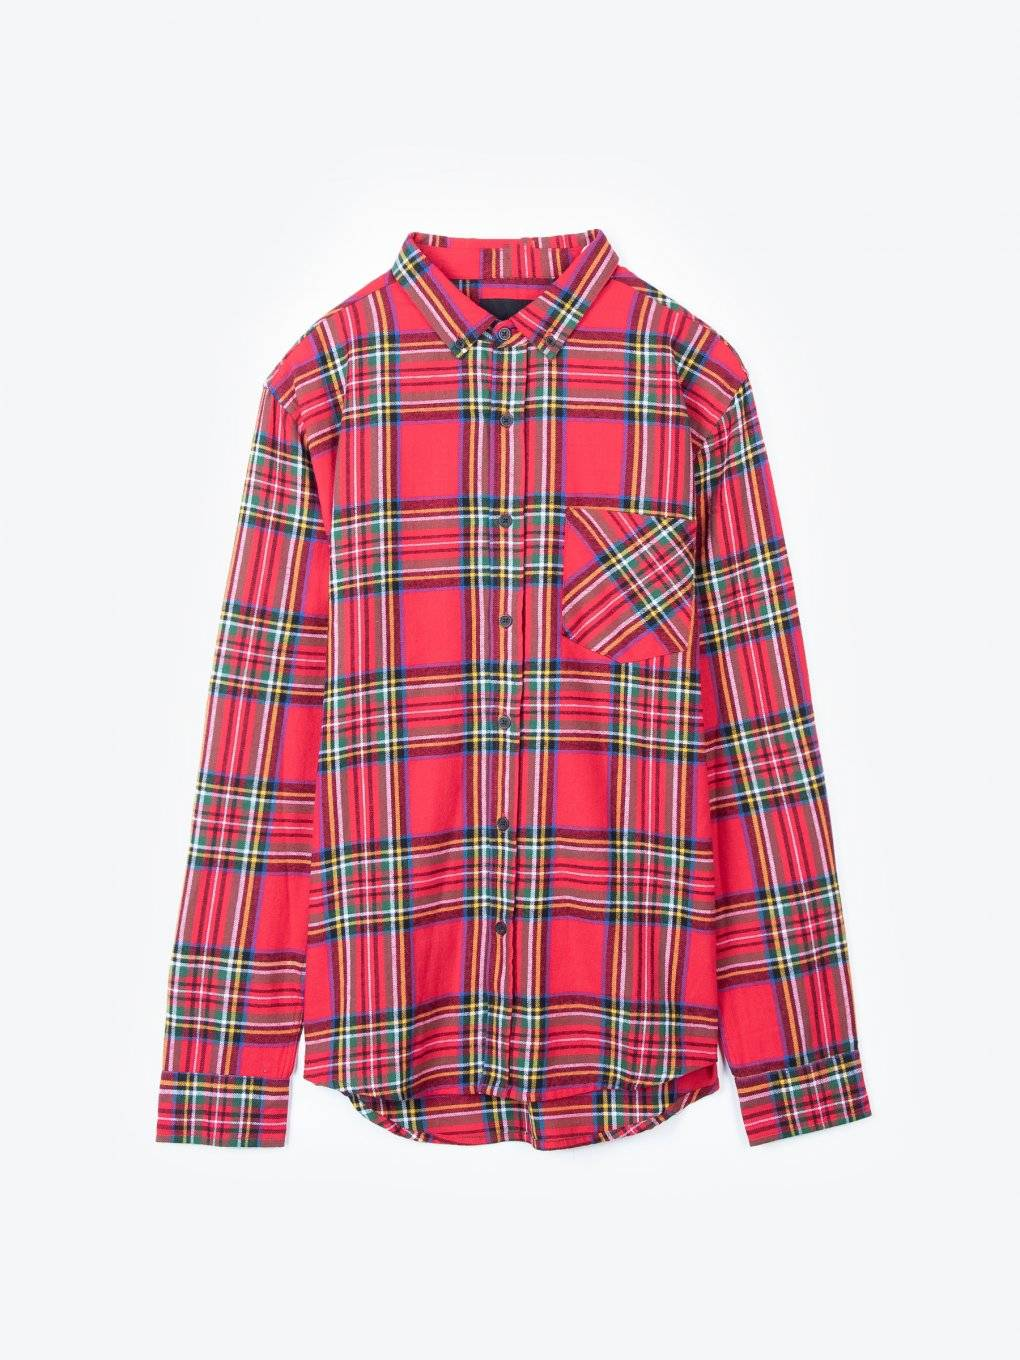 Plaid flannel cotton shirt